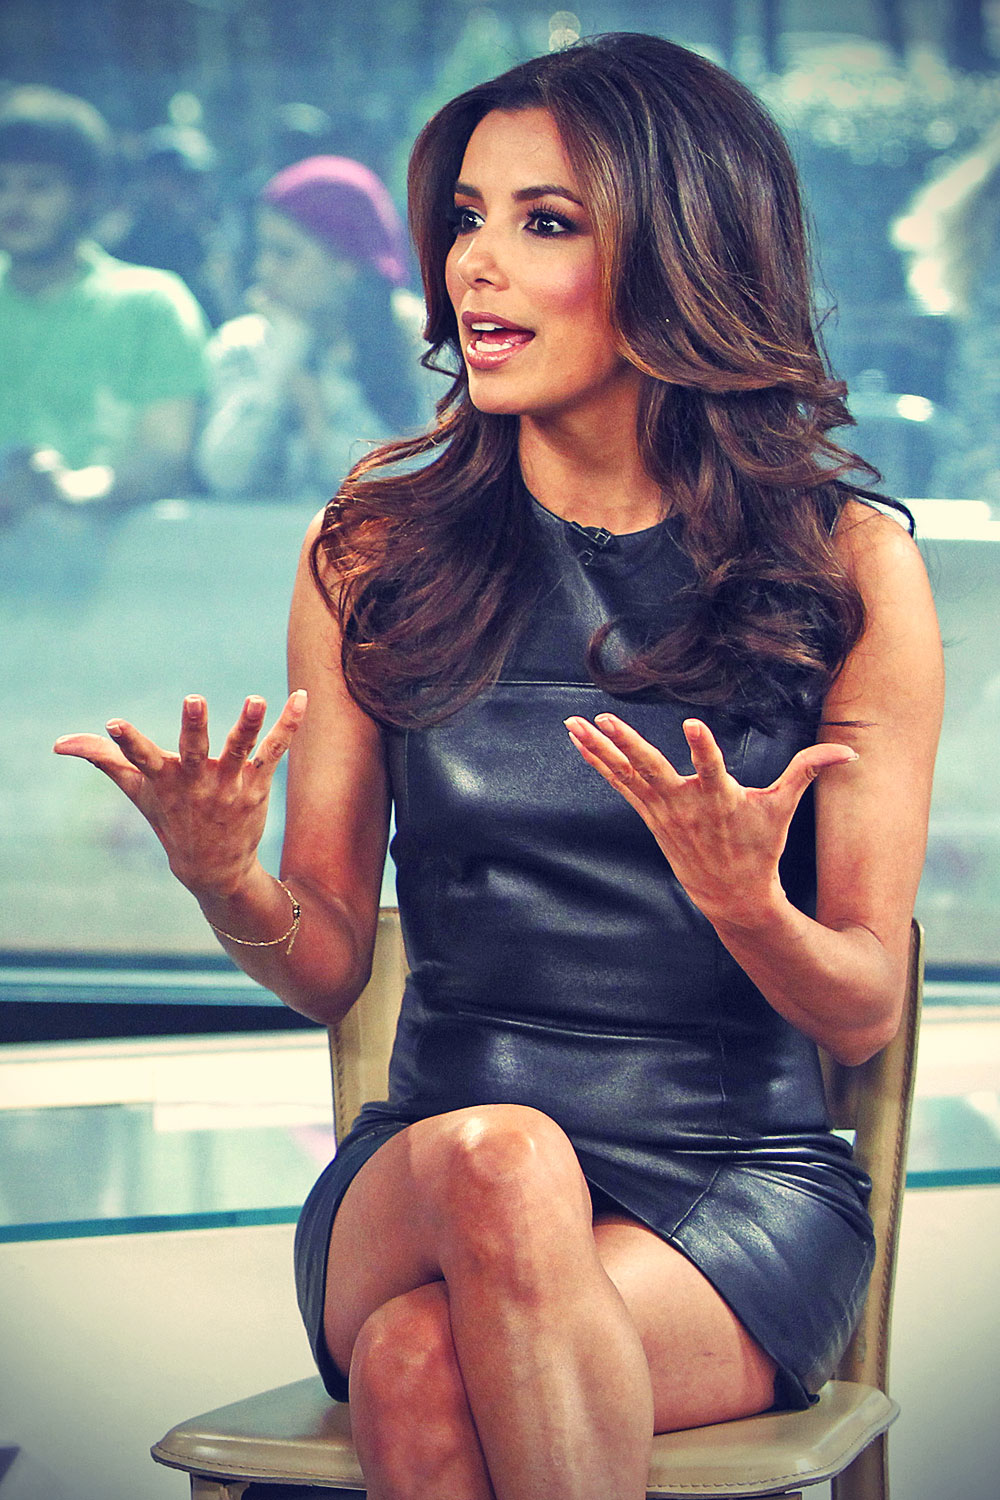 Eva Longoria on NBC News Today show